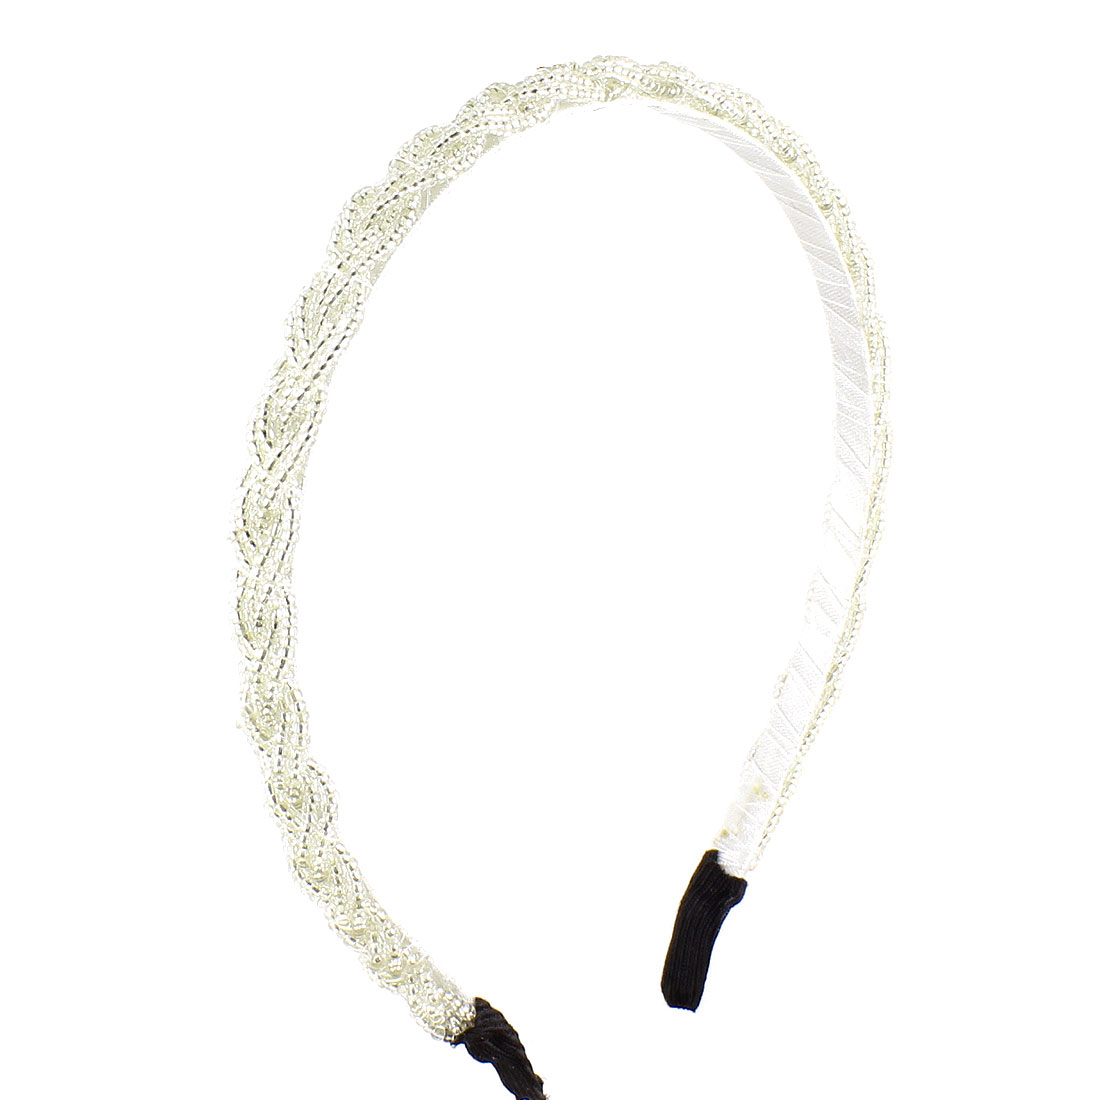 Plastic Mini Beads Braid Slim Metal Hair Hoop Headband Off White for Ladies